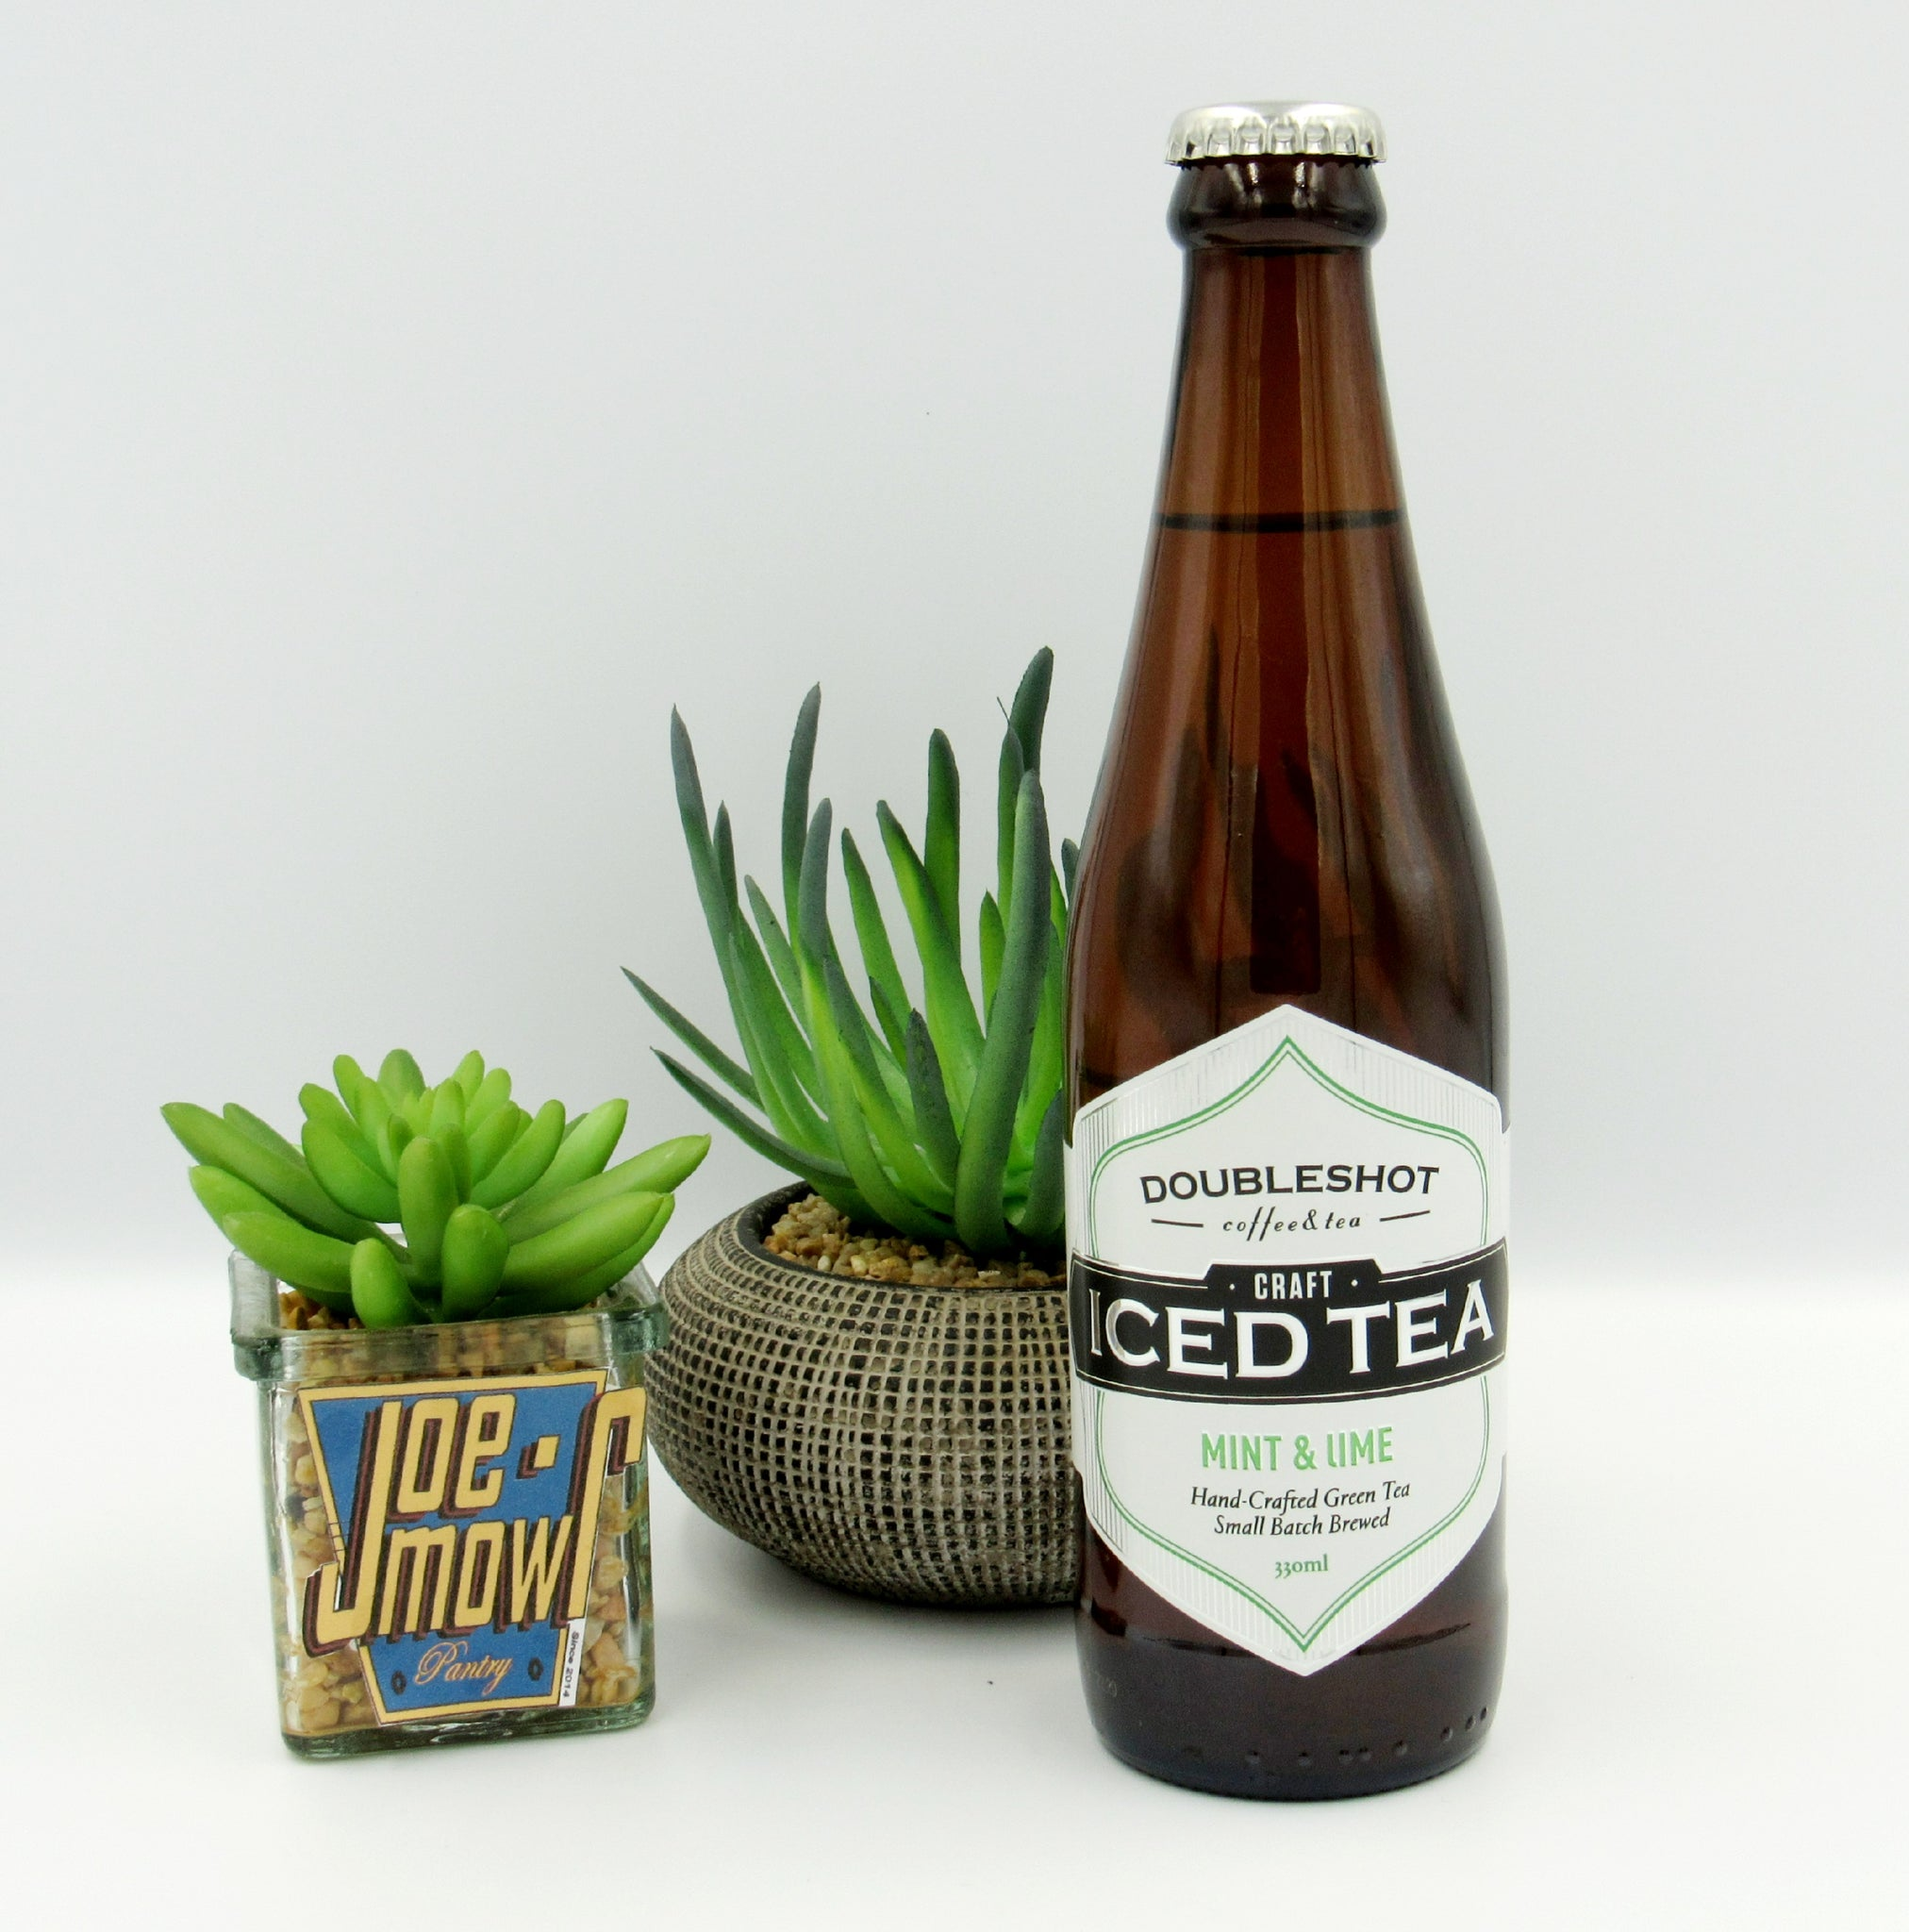 Doubleshot Mint & Lime Ice-tea 330ml singles